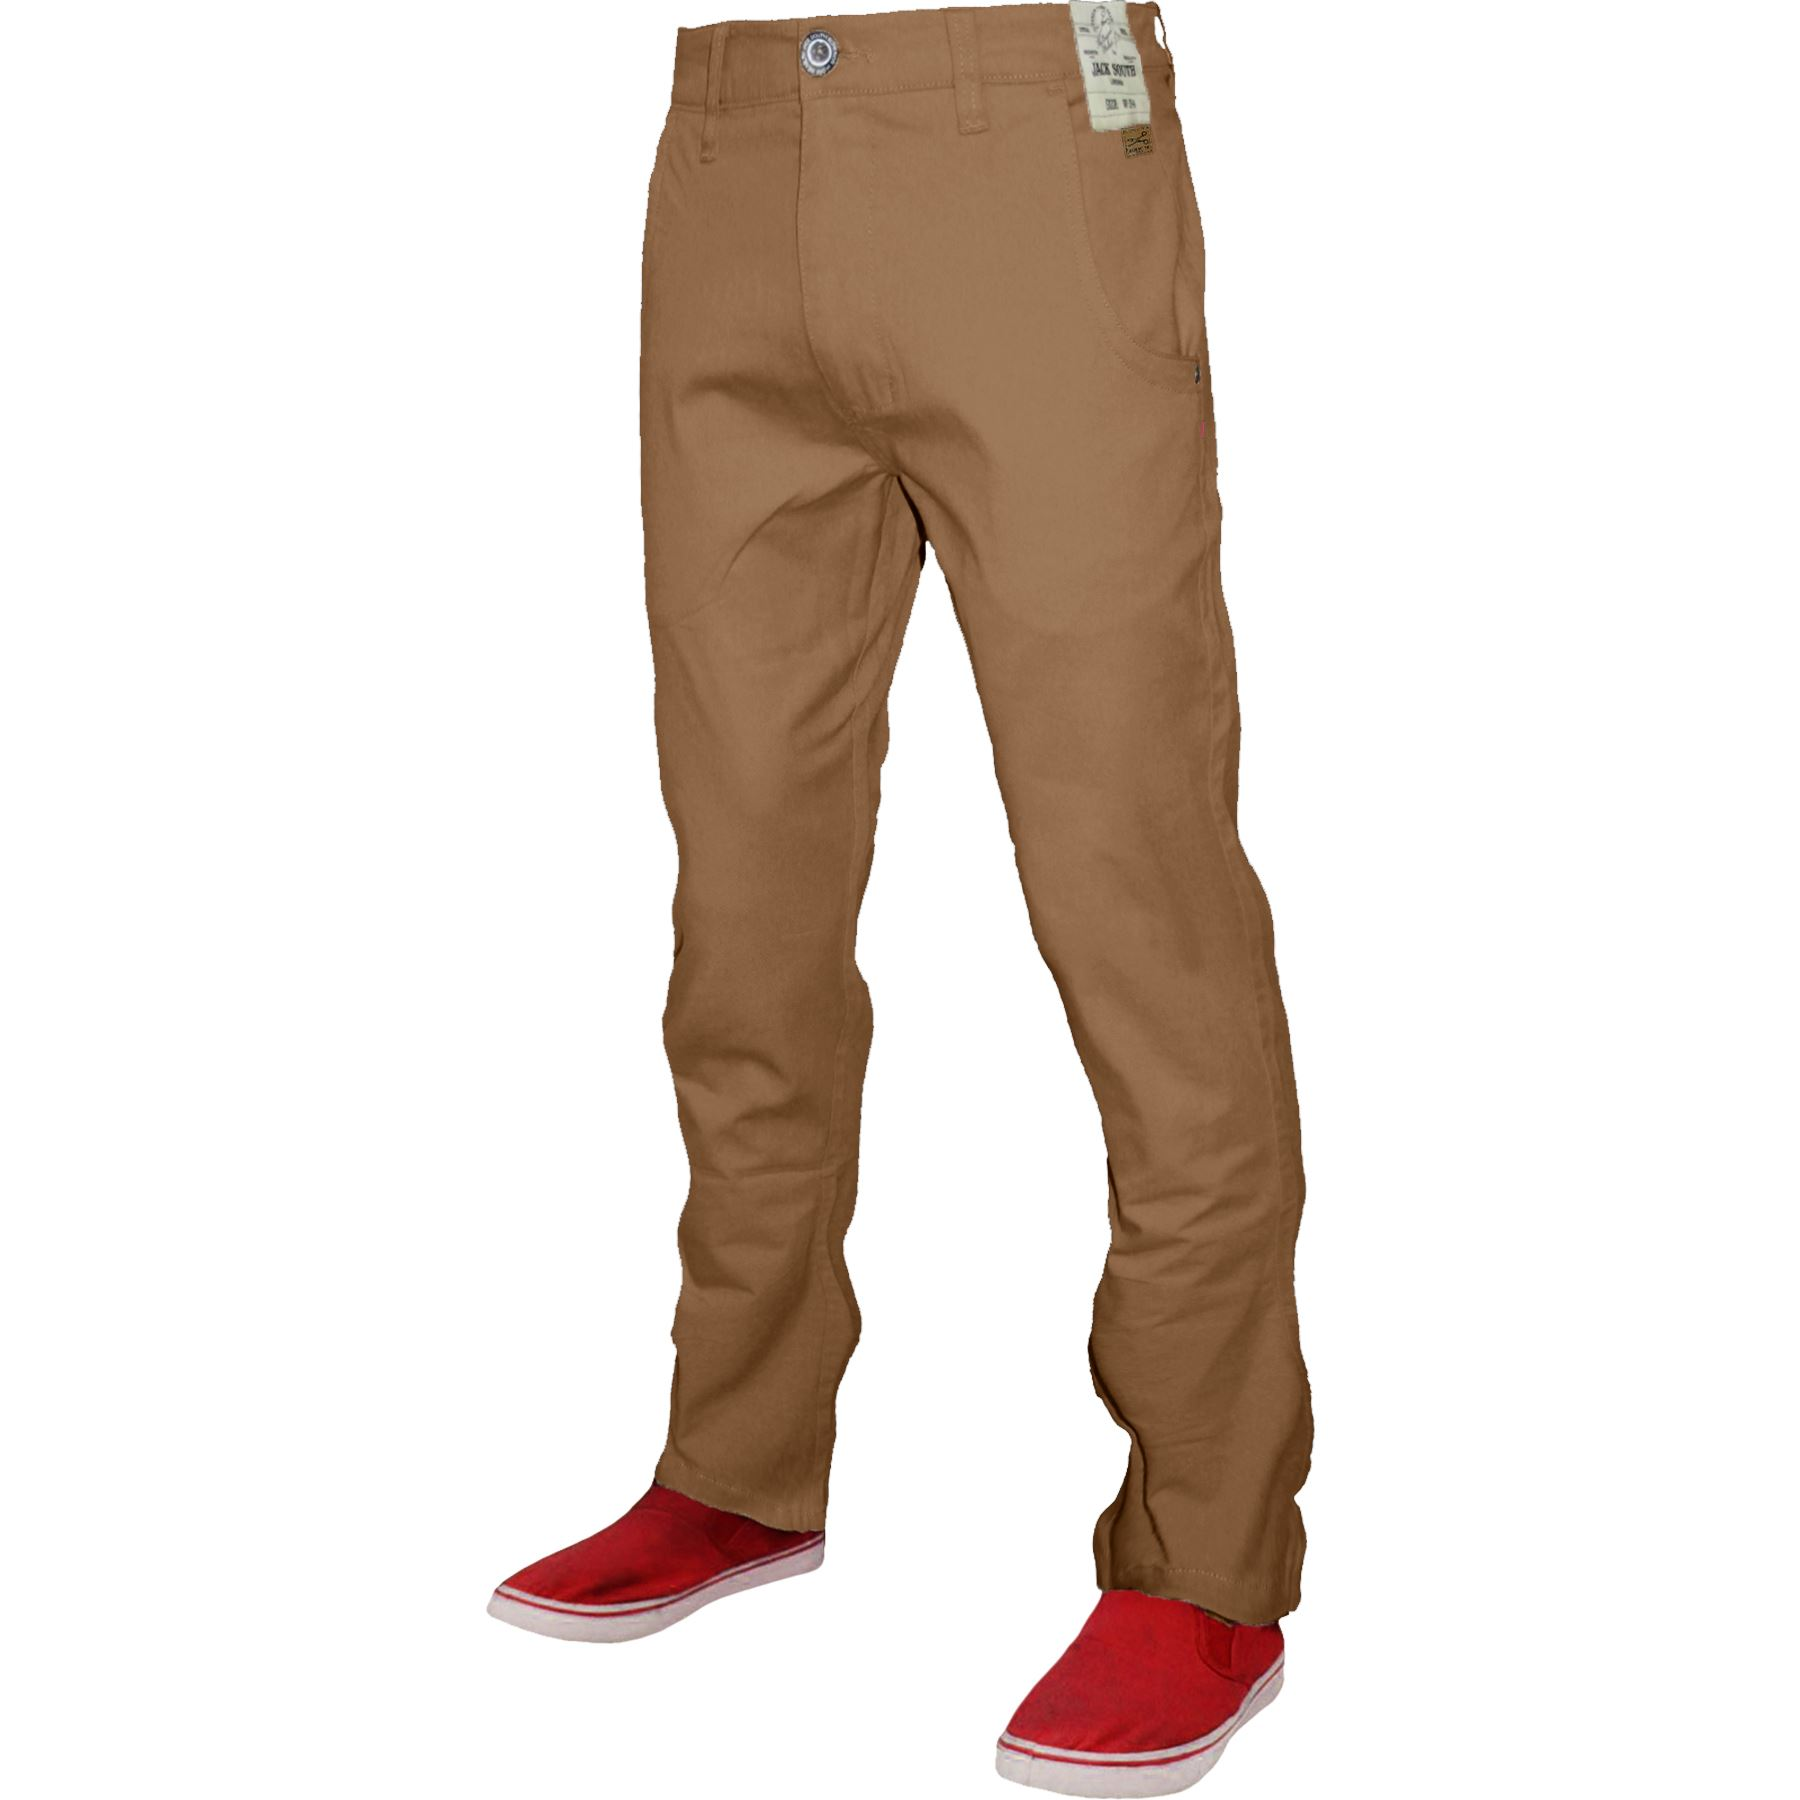 Mens-Chino-Classic-Regular-Fit-Trouser-Casual-Stretch-Spandex-Pants-Size-32-40 thumbnail 27